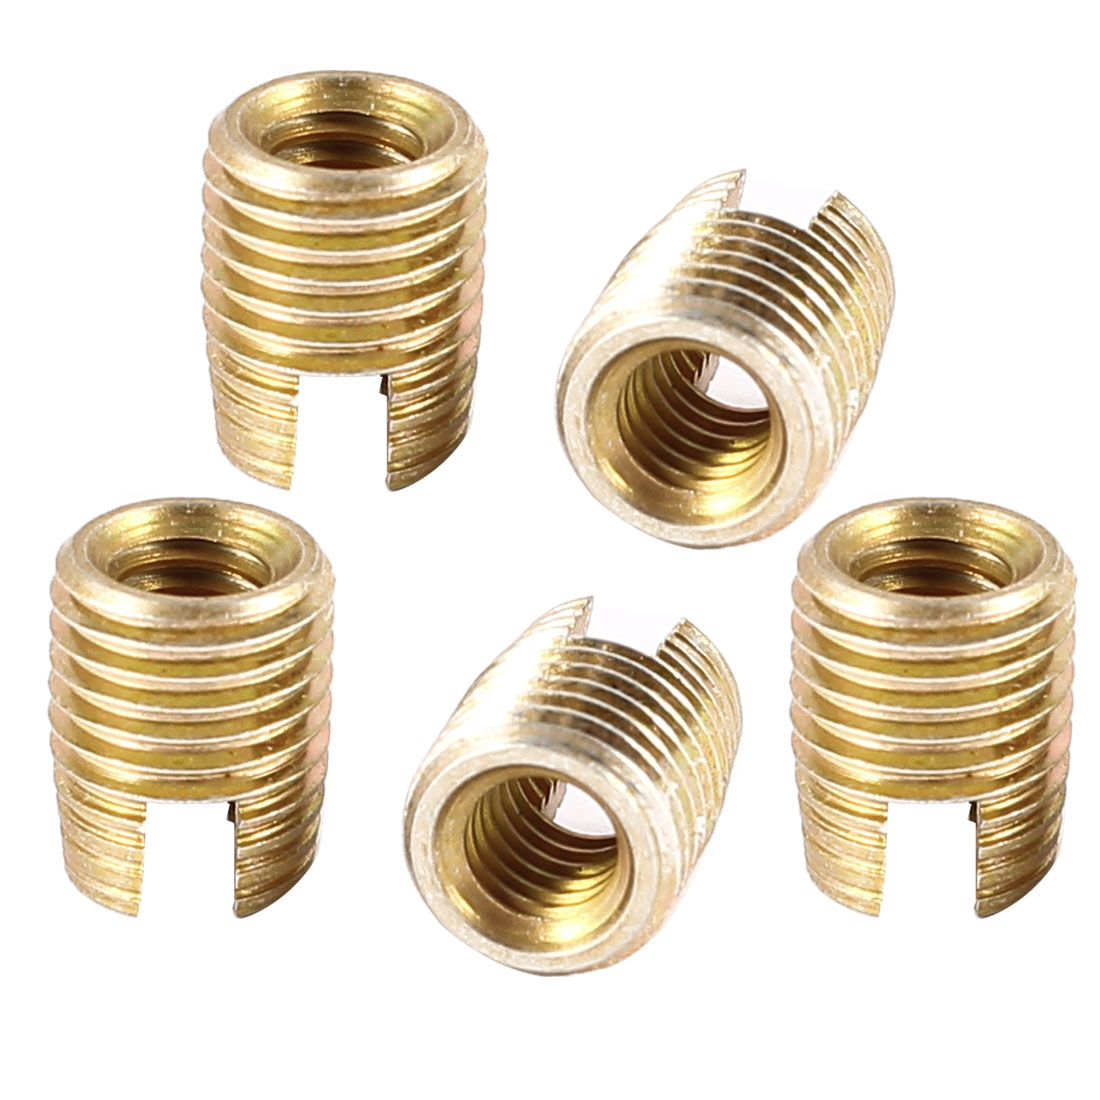 Unique Bargains 5 x Brass Tone 8mmx6.35mmx4mm Disassemble Self Tapping Threaded Inserts